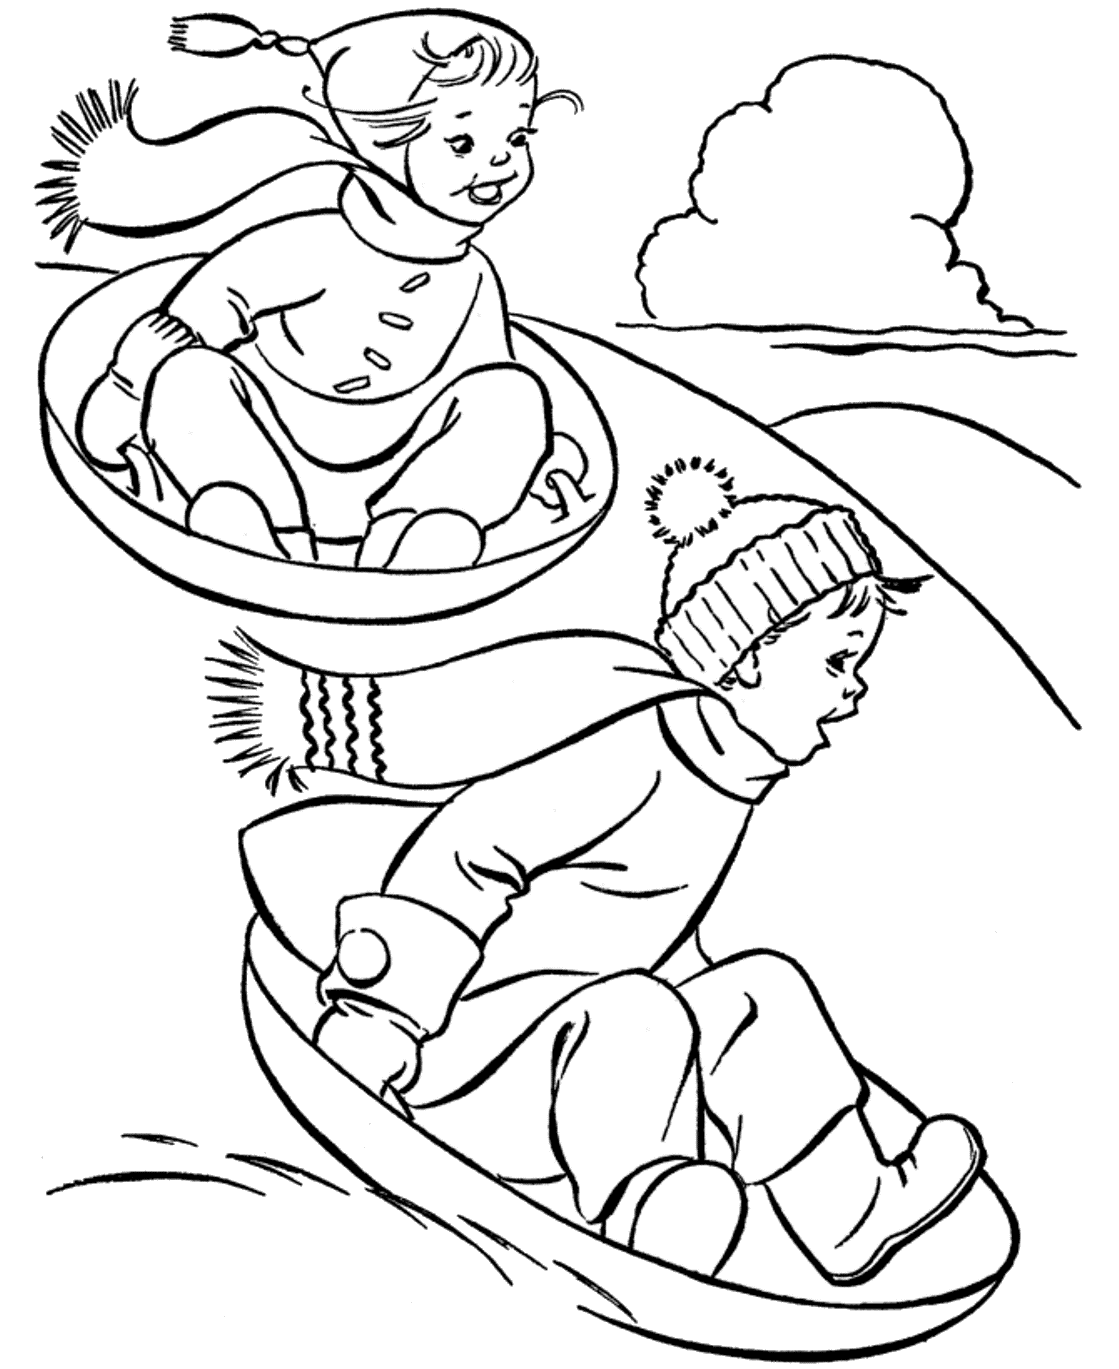 Unforgettable image intended for printable winter coloring pages